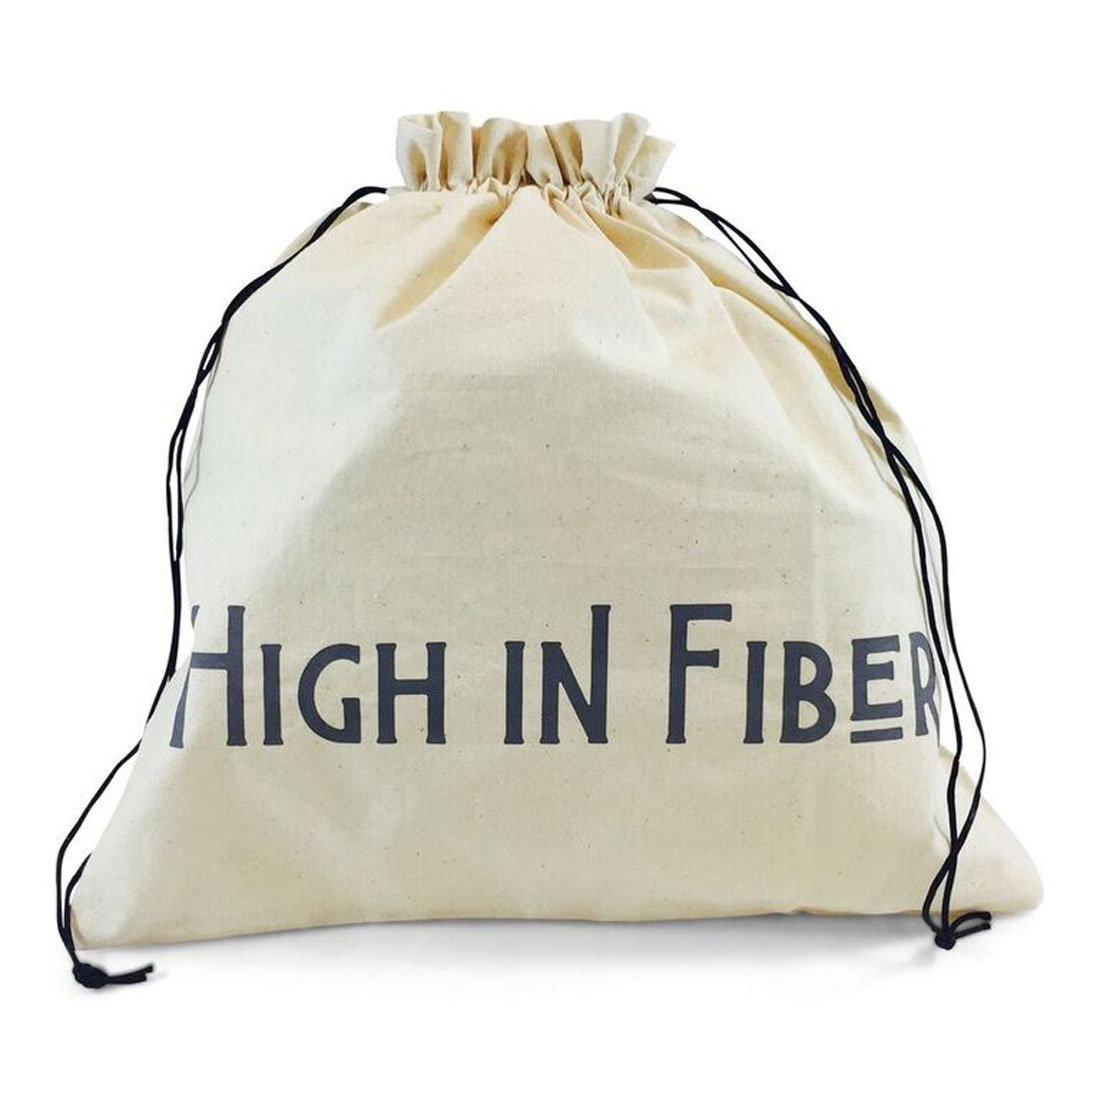 "della Q Edict Yarn Storage and Knitting Large Bag (14.5"" W x 16.5"" H) ""High in Fiber Low in Calories"""